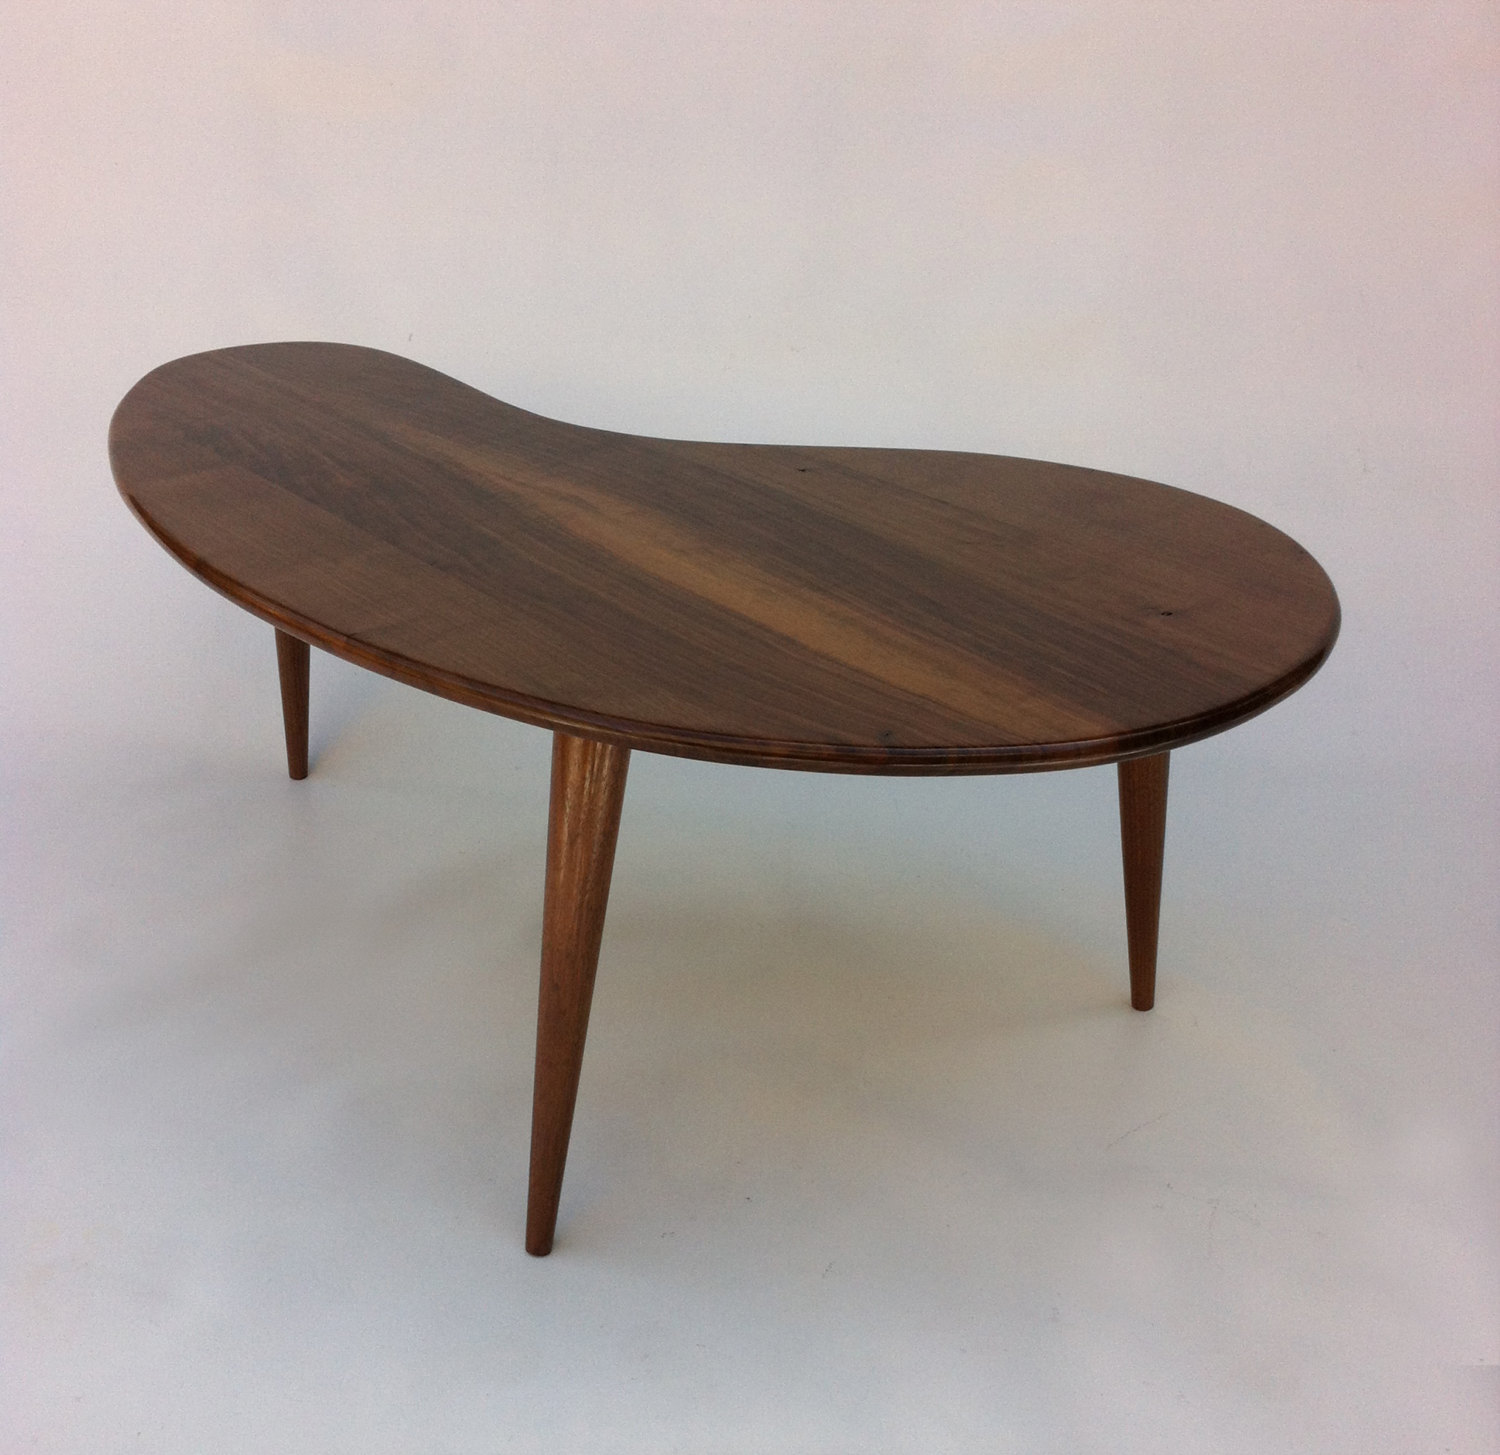 Mid Century Modern Coffee Table Solid Walnut Kidney Bean Cocktail Table Eames Era Biomorphic